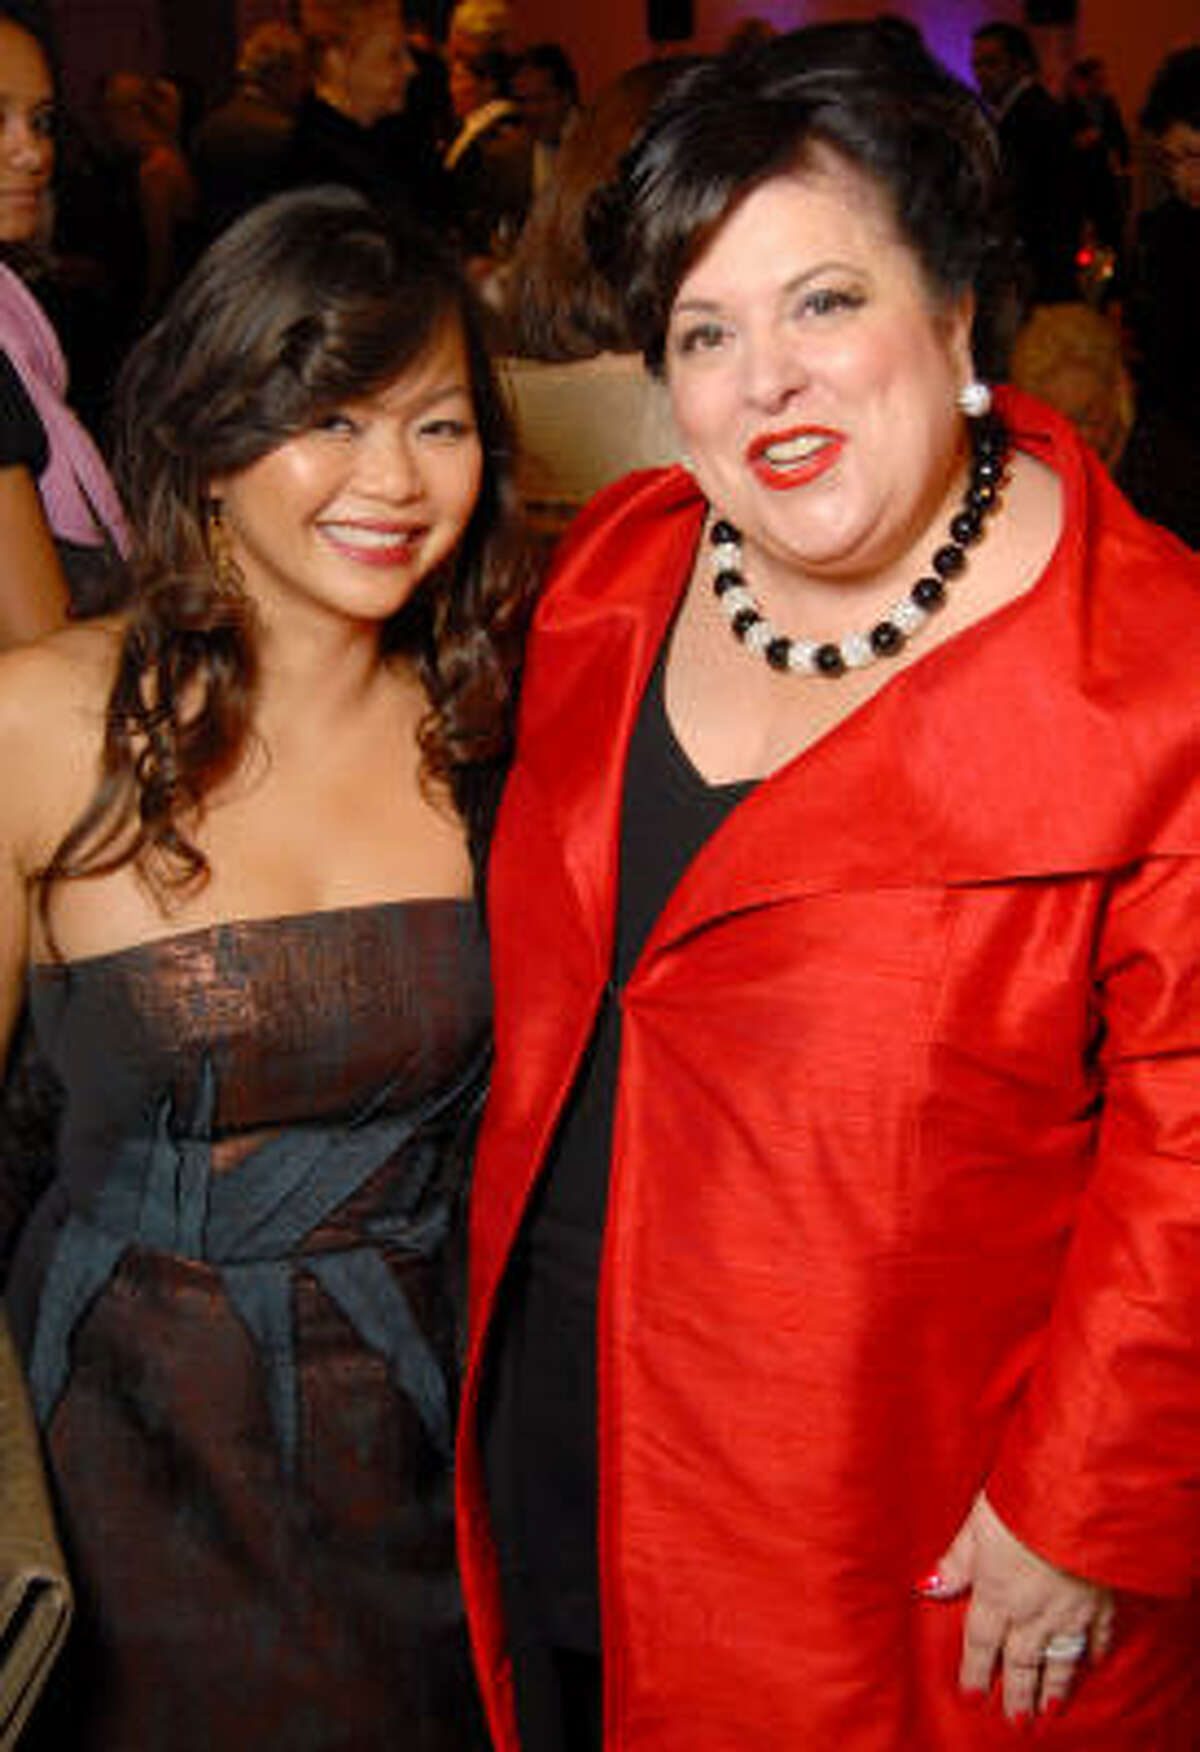 Honorees Chloe Dao and Gayla Bentley at the Night of Stars Gala honoring Houston's top fashion designers at the Junior League of Houston on Nov. 3.